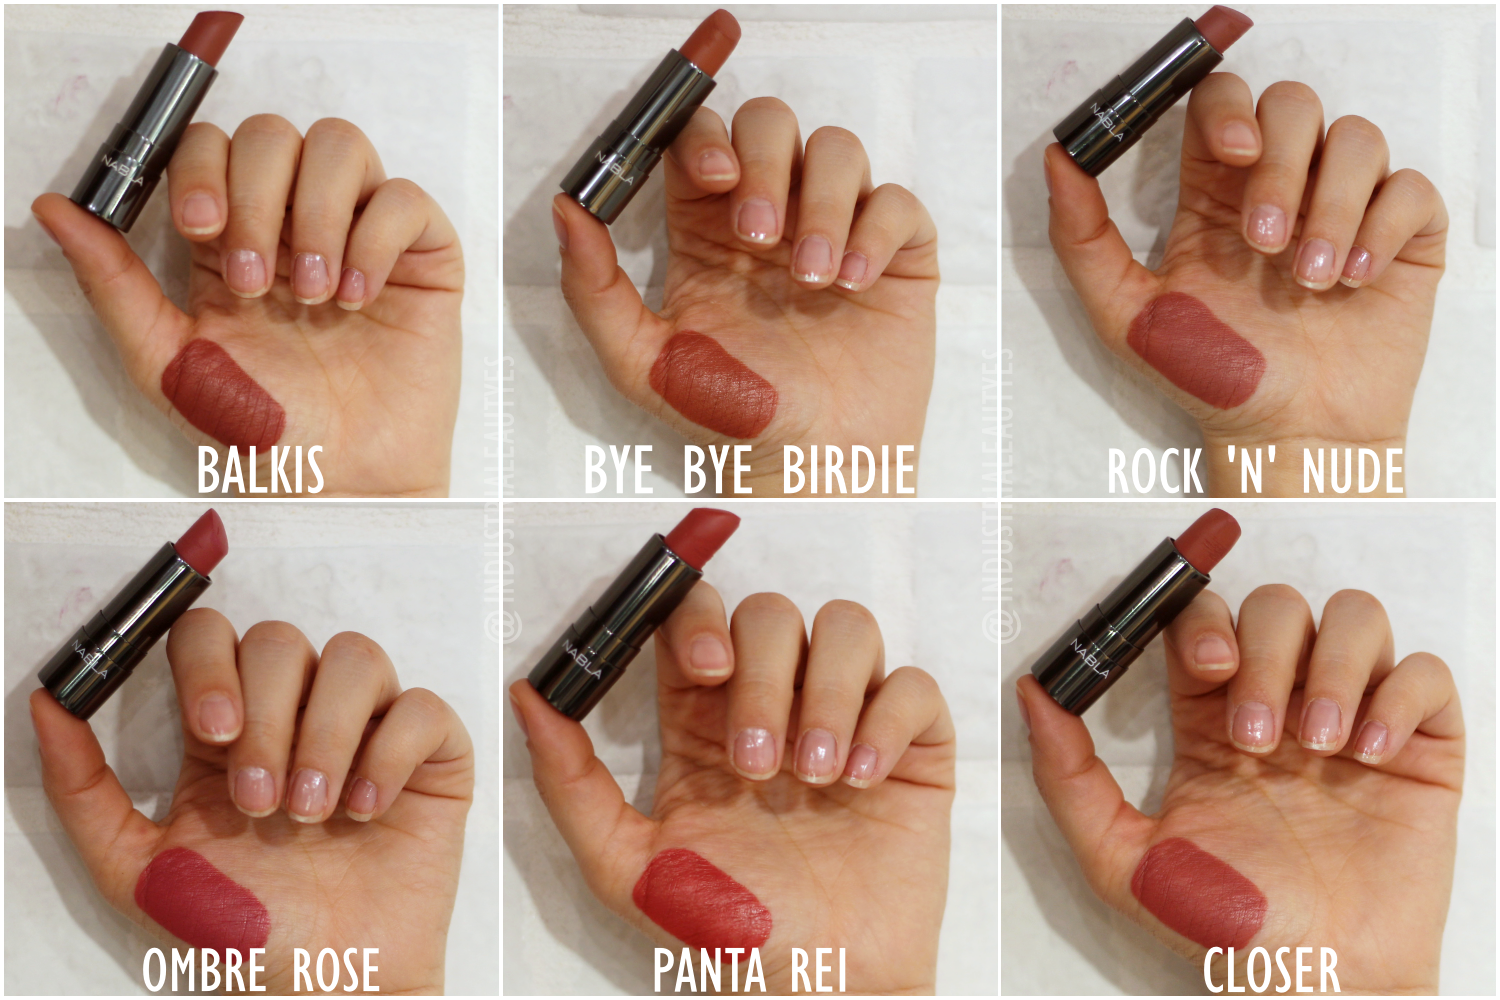 diva crime lipstick swatches I